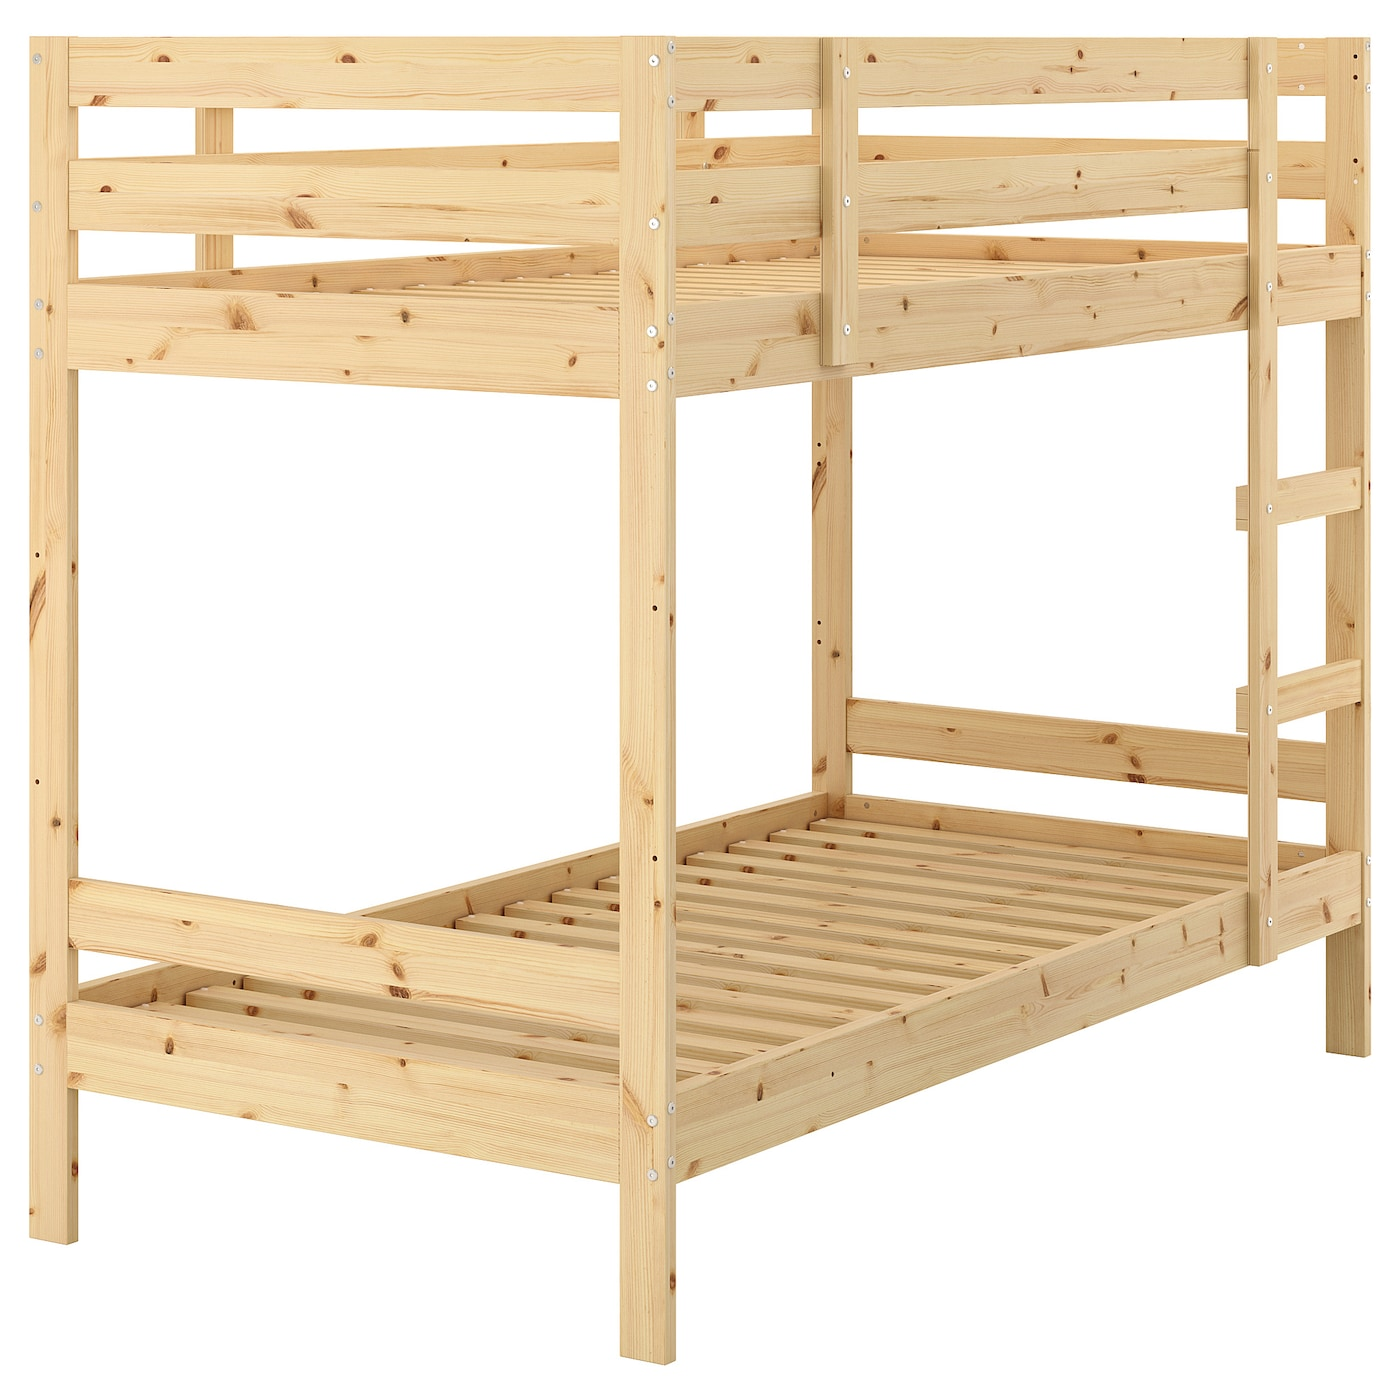 Mydal Bunk Bed Frame Pine 90x200 Cm Ikea: how to buy a bed